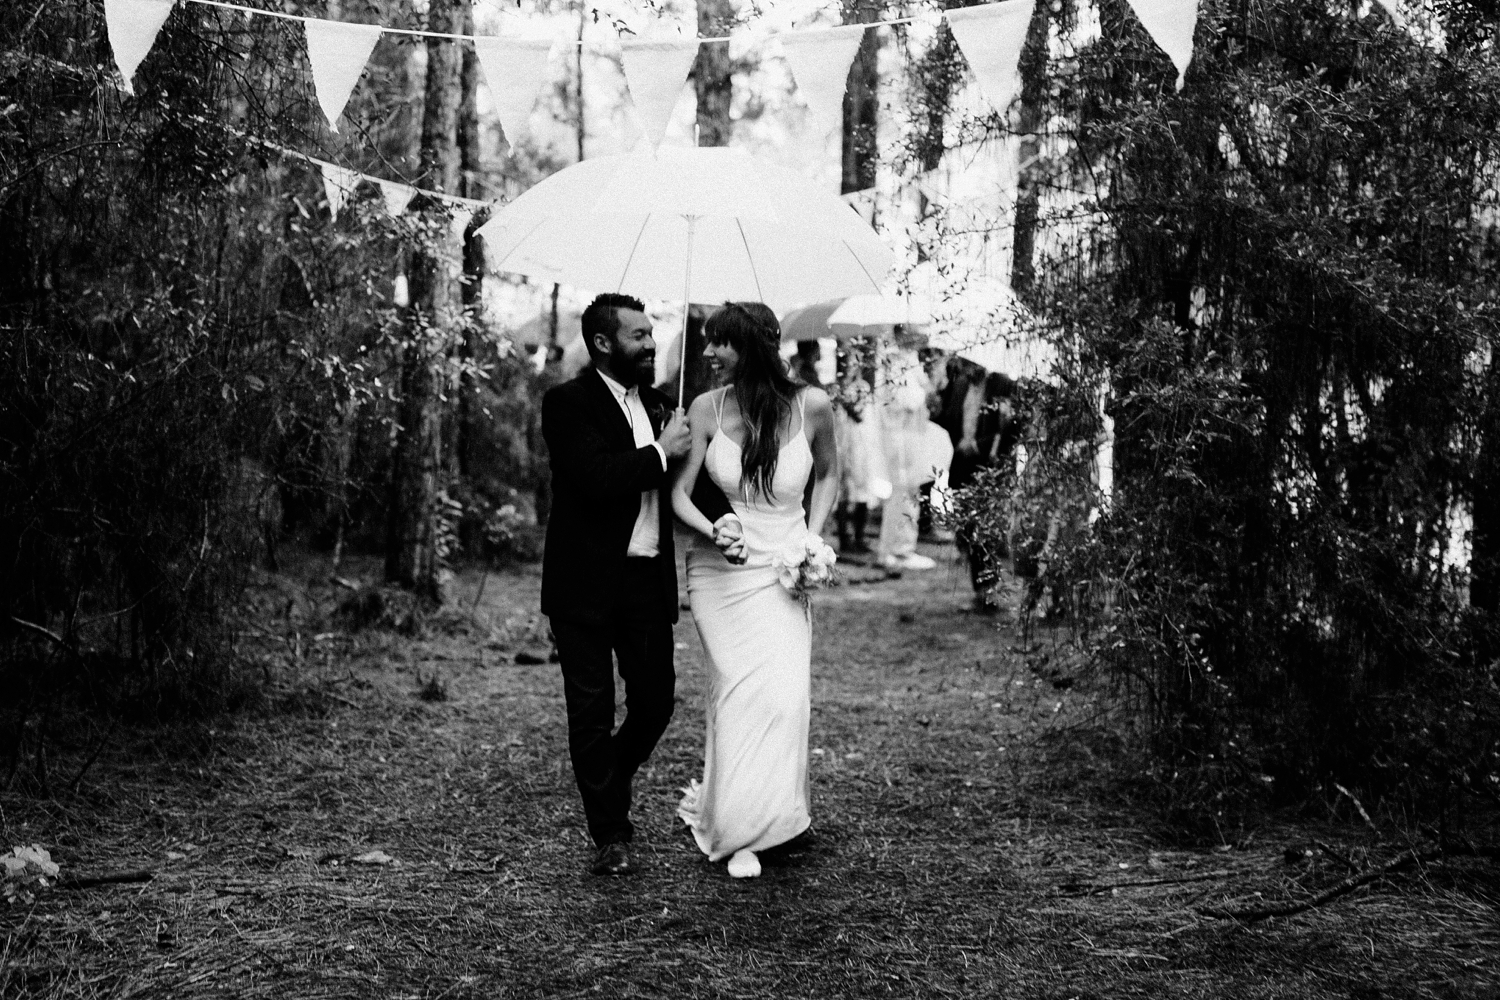 rainy-wedding-pictures-083